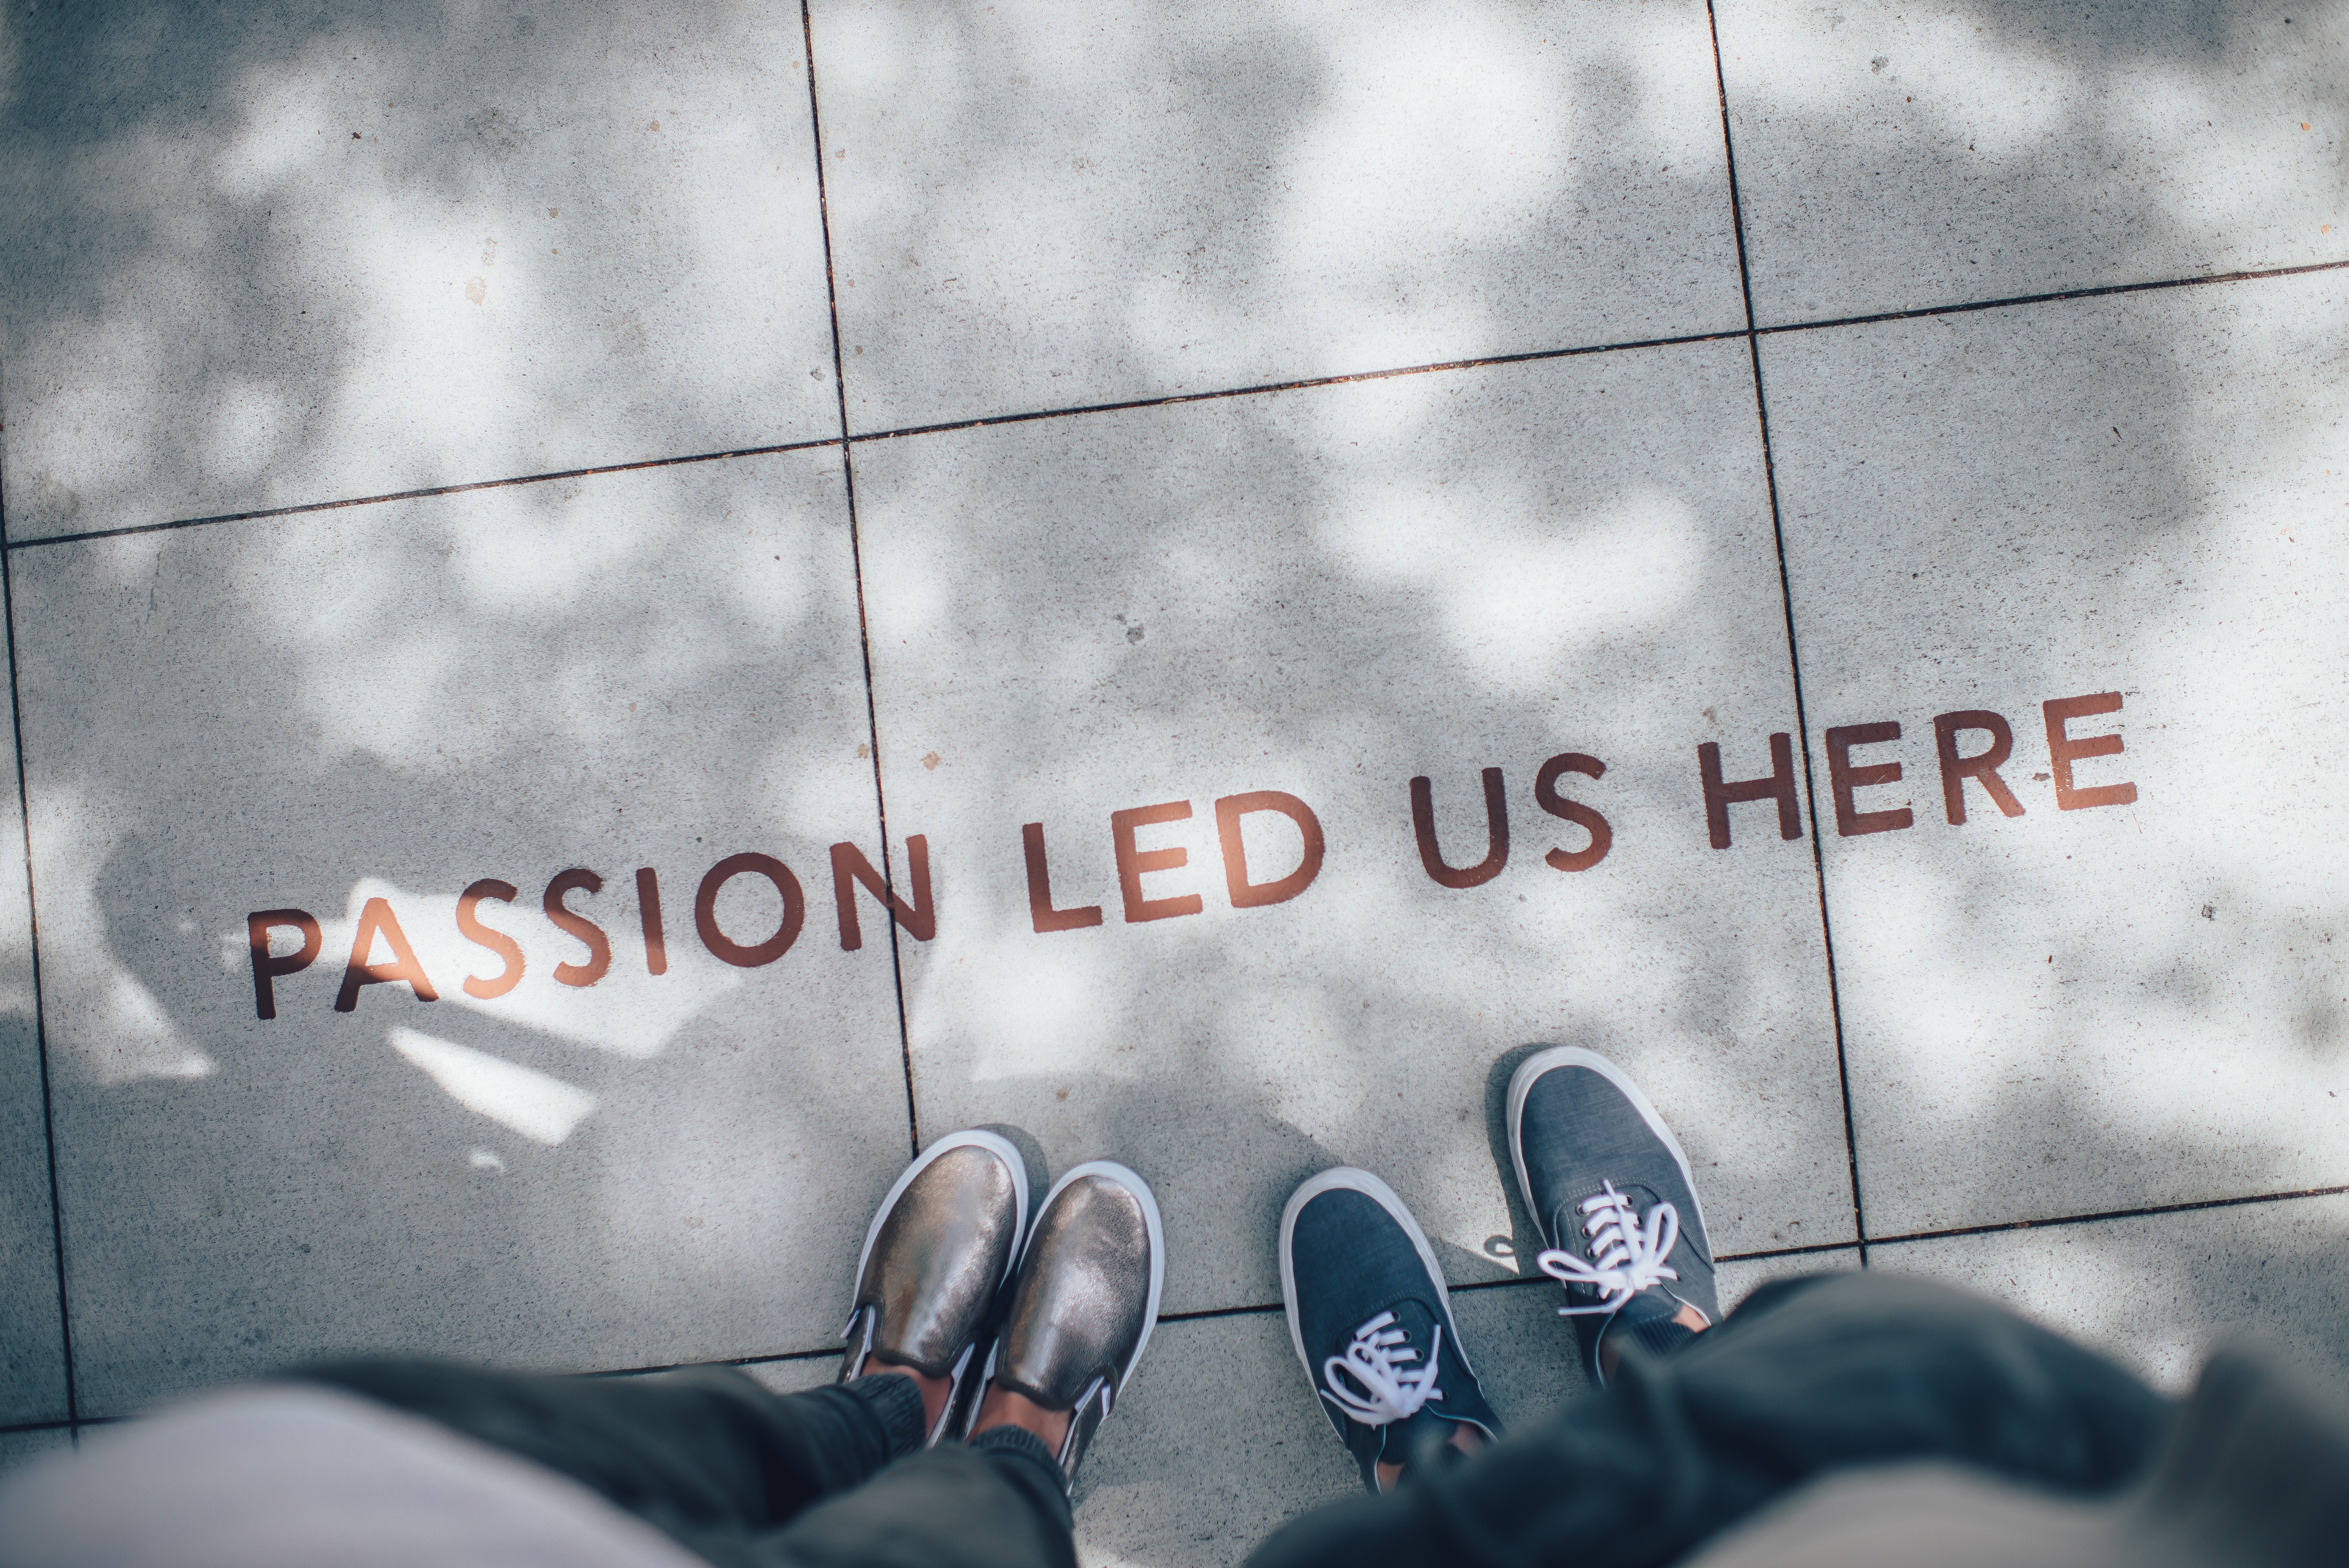 Passion Led Us Here